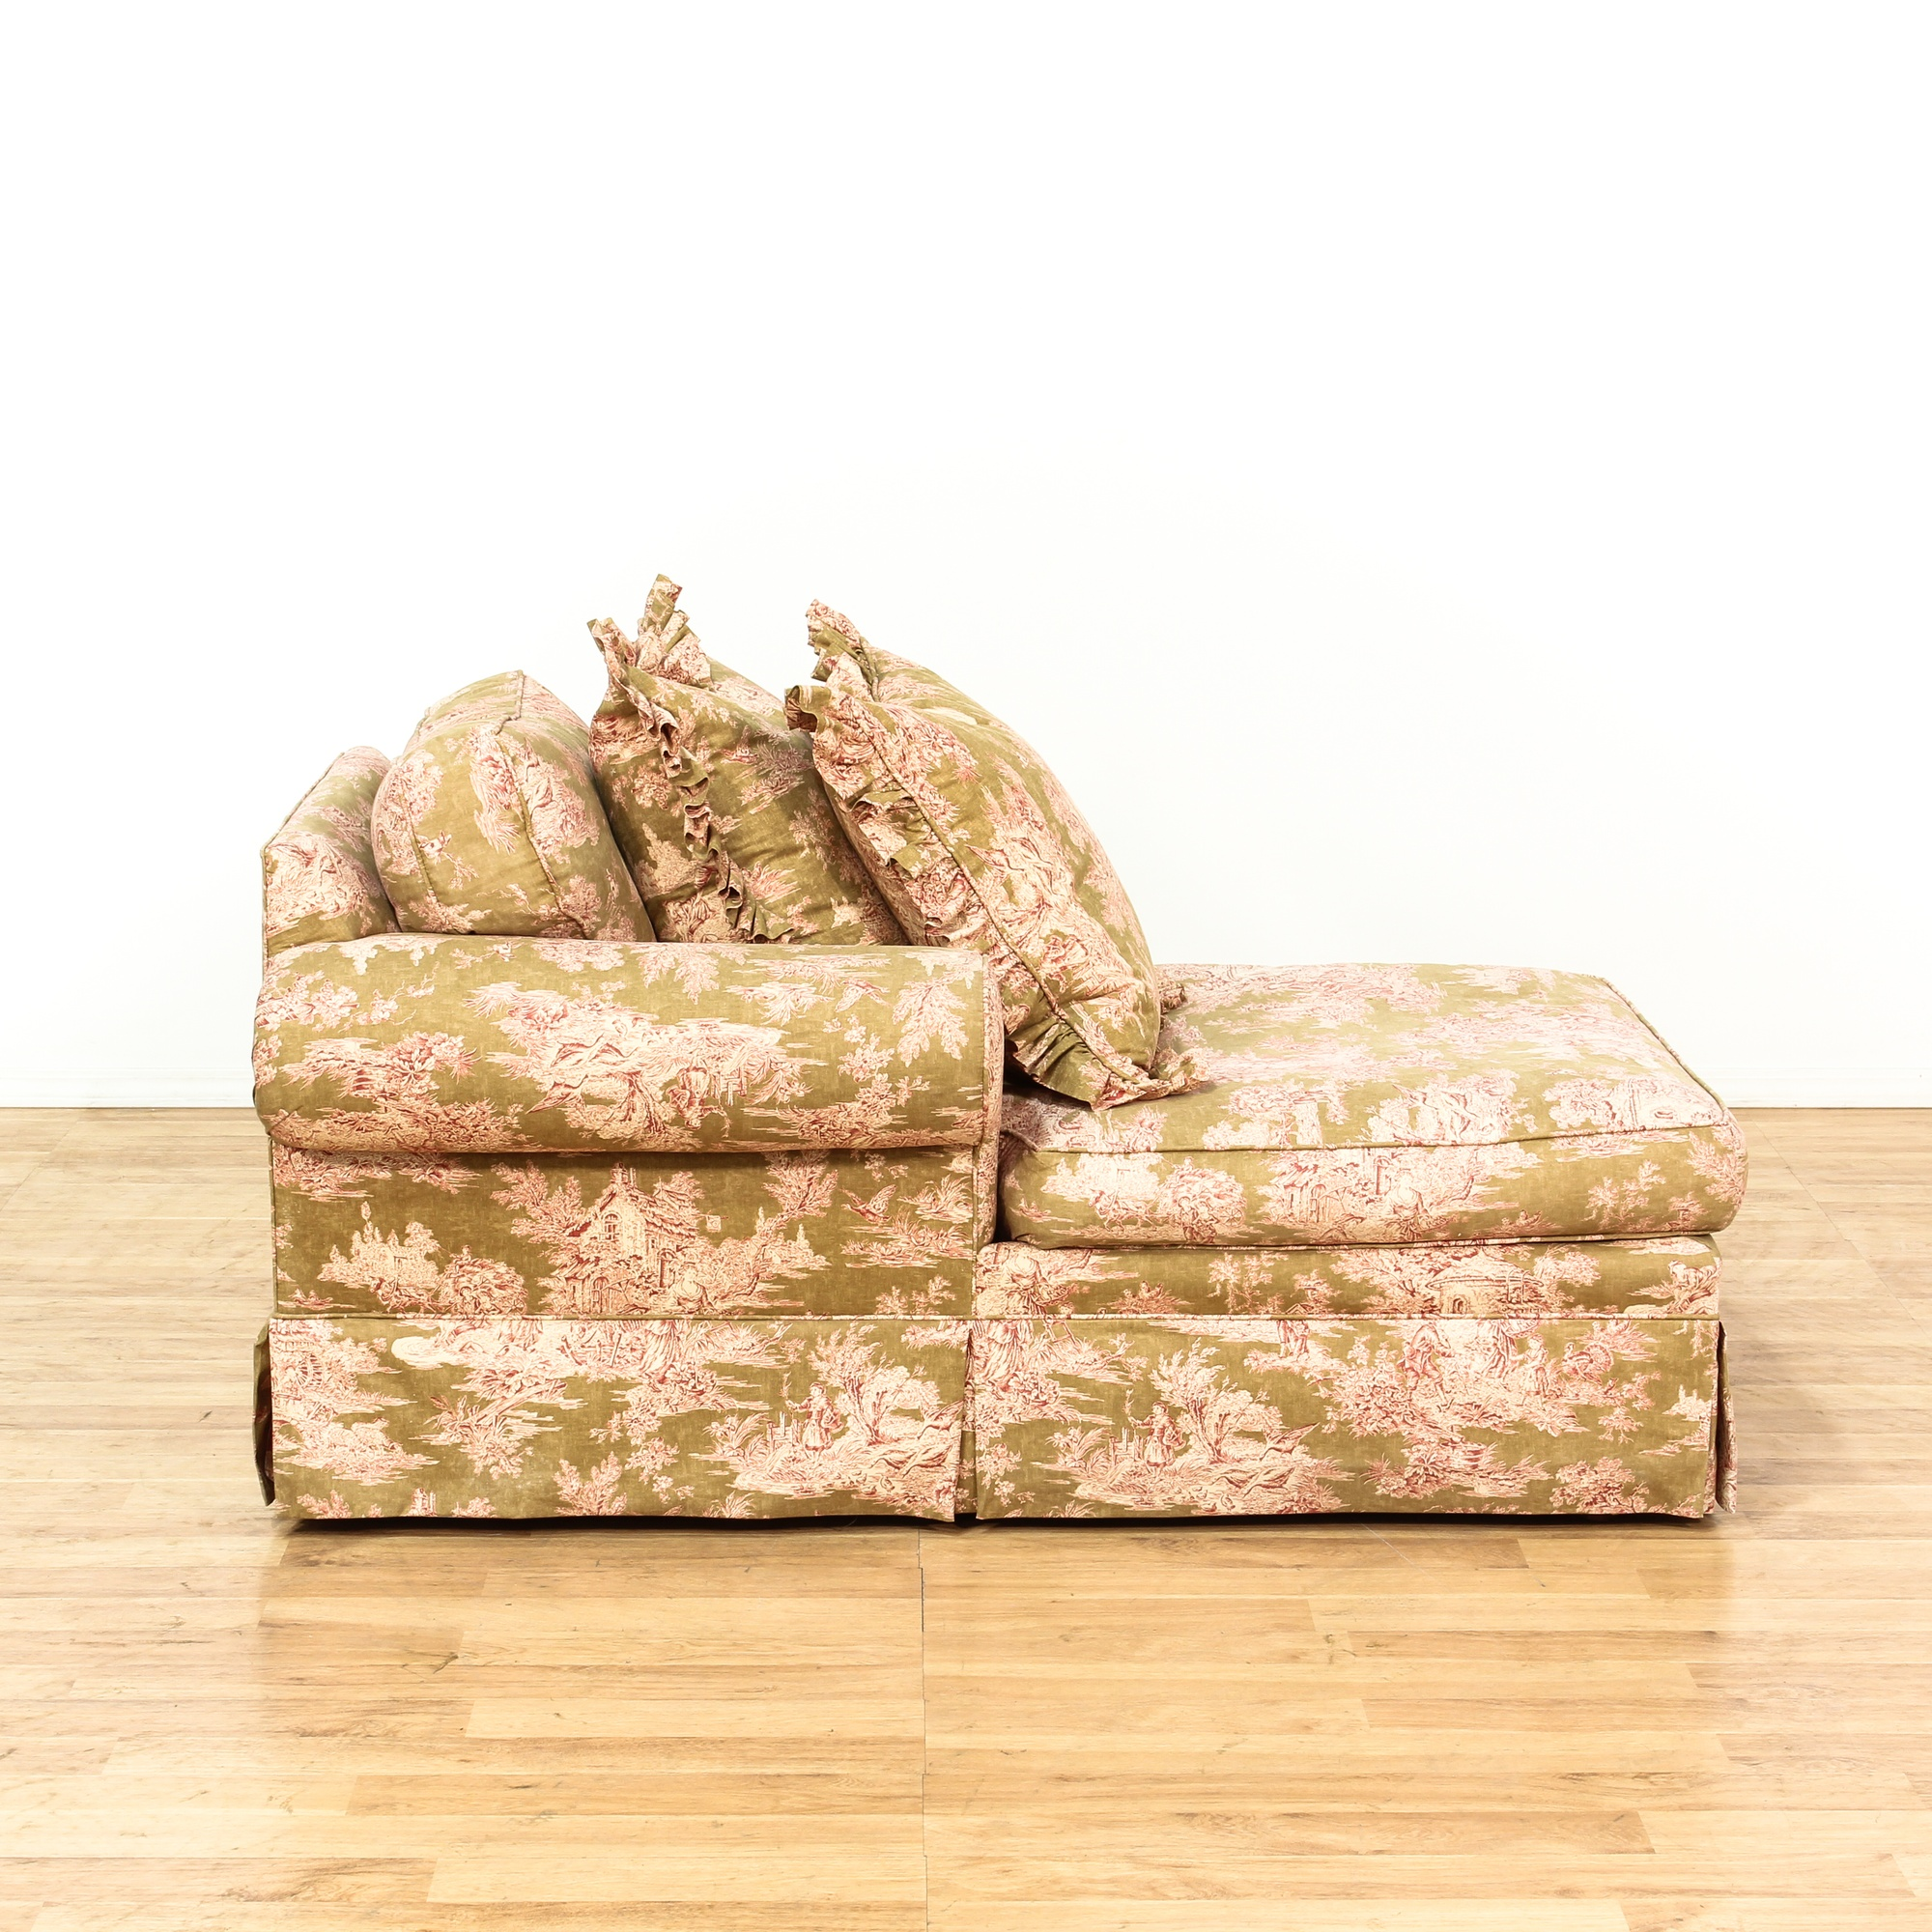 green shabby chic toile upholstered chaise lounge loveseat vintage furniture san diego los. Black Bedroom Furniture Sets. Home Design Ideas